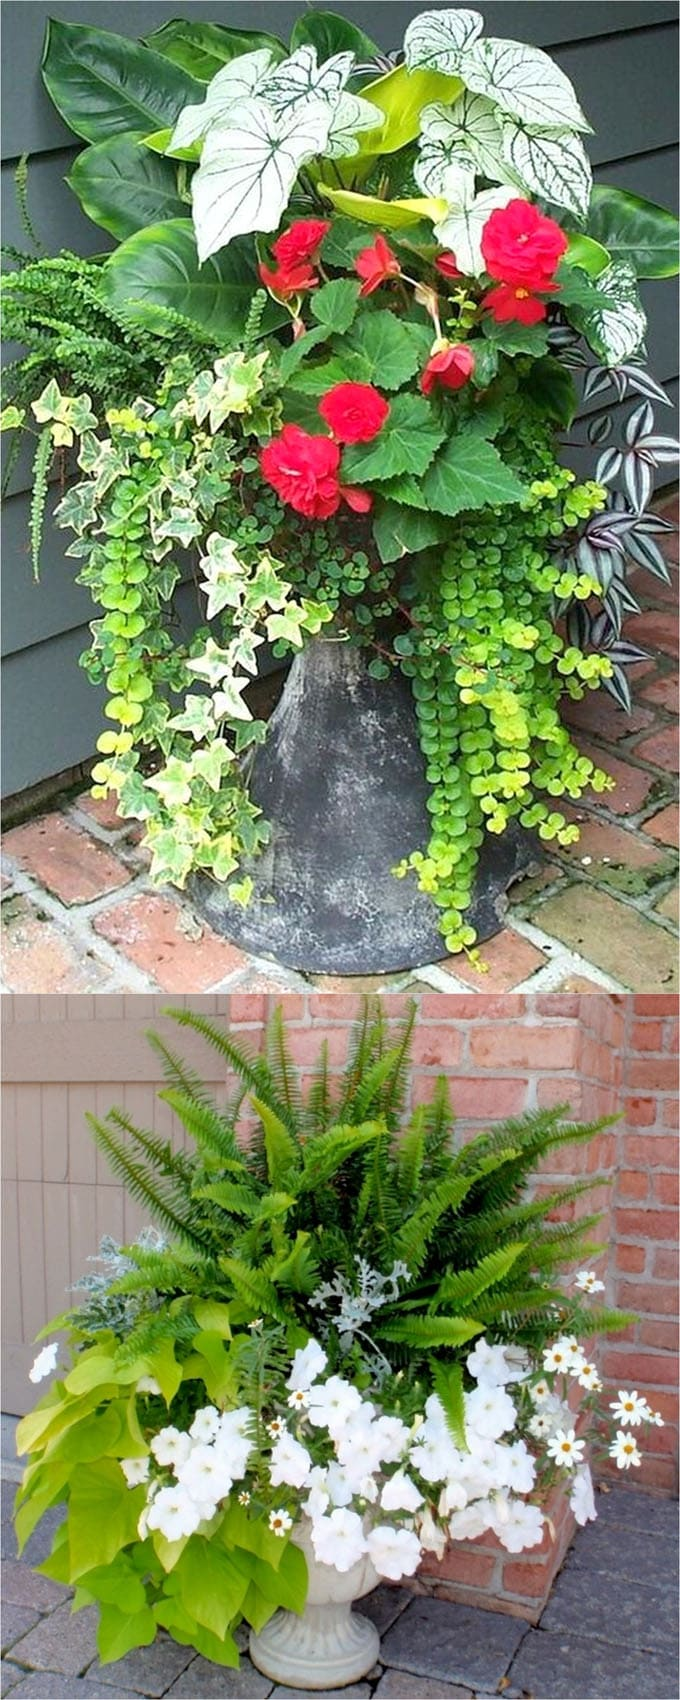 foliage shade plants in patio planter